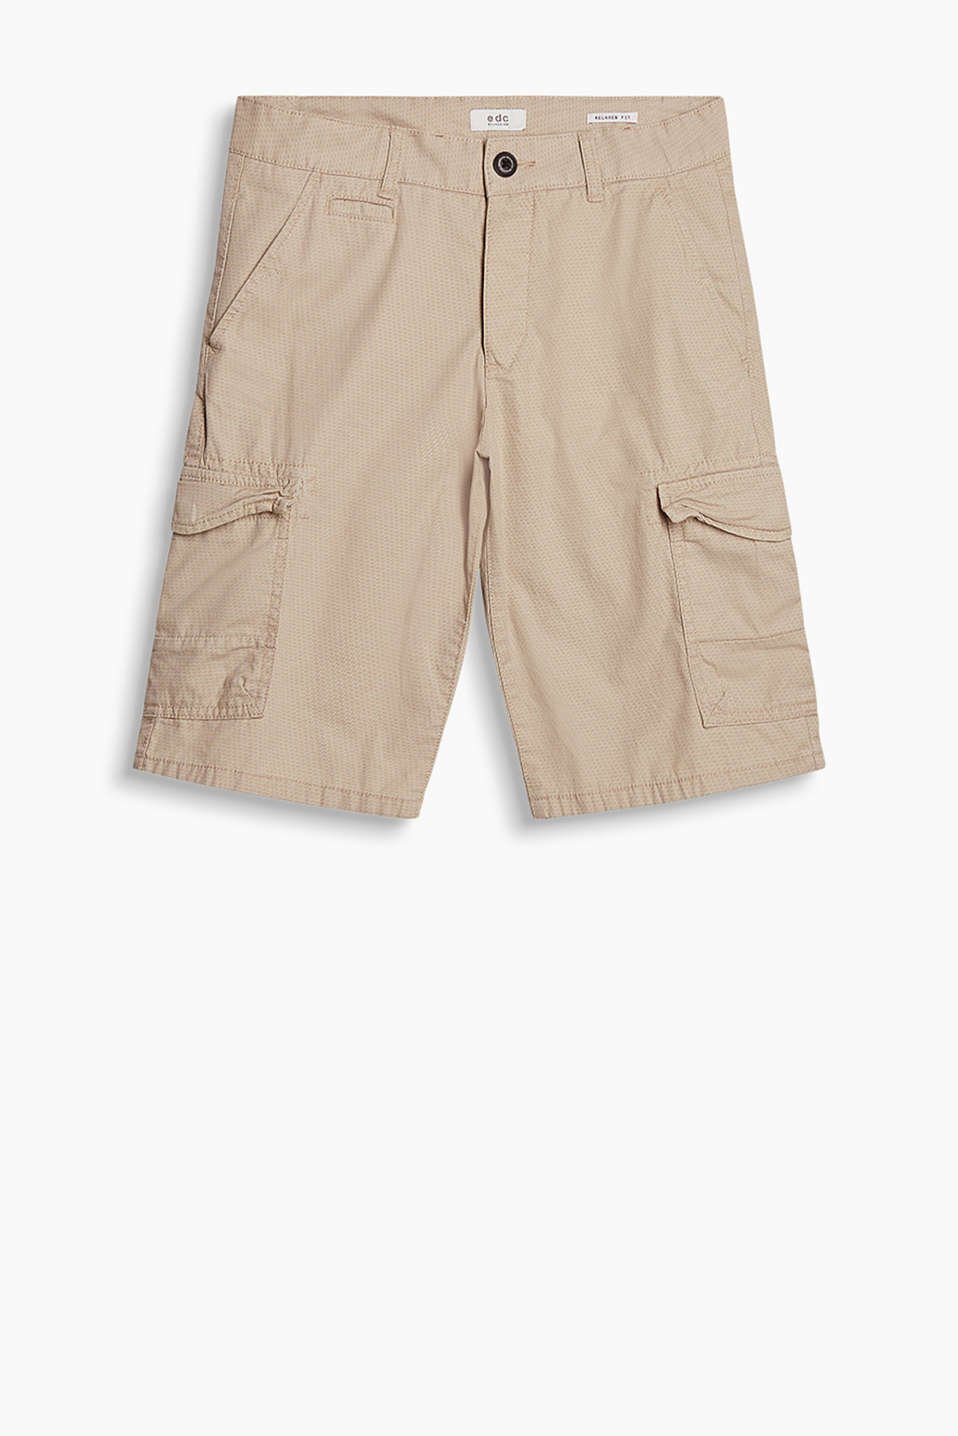 Bermuda shorts with a fine, all-over print made of 100% cotton